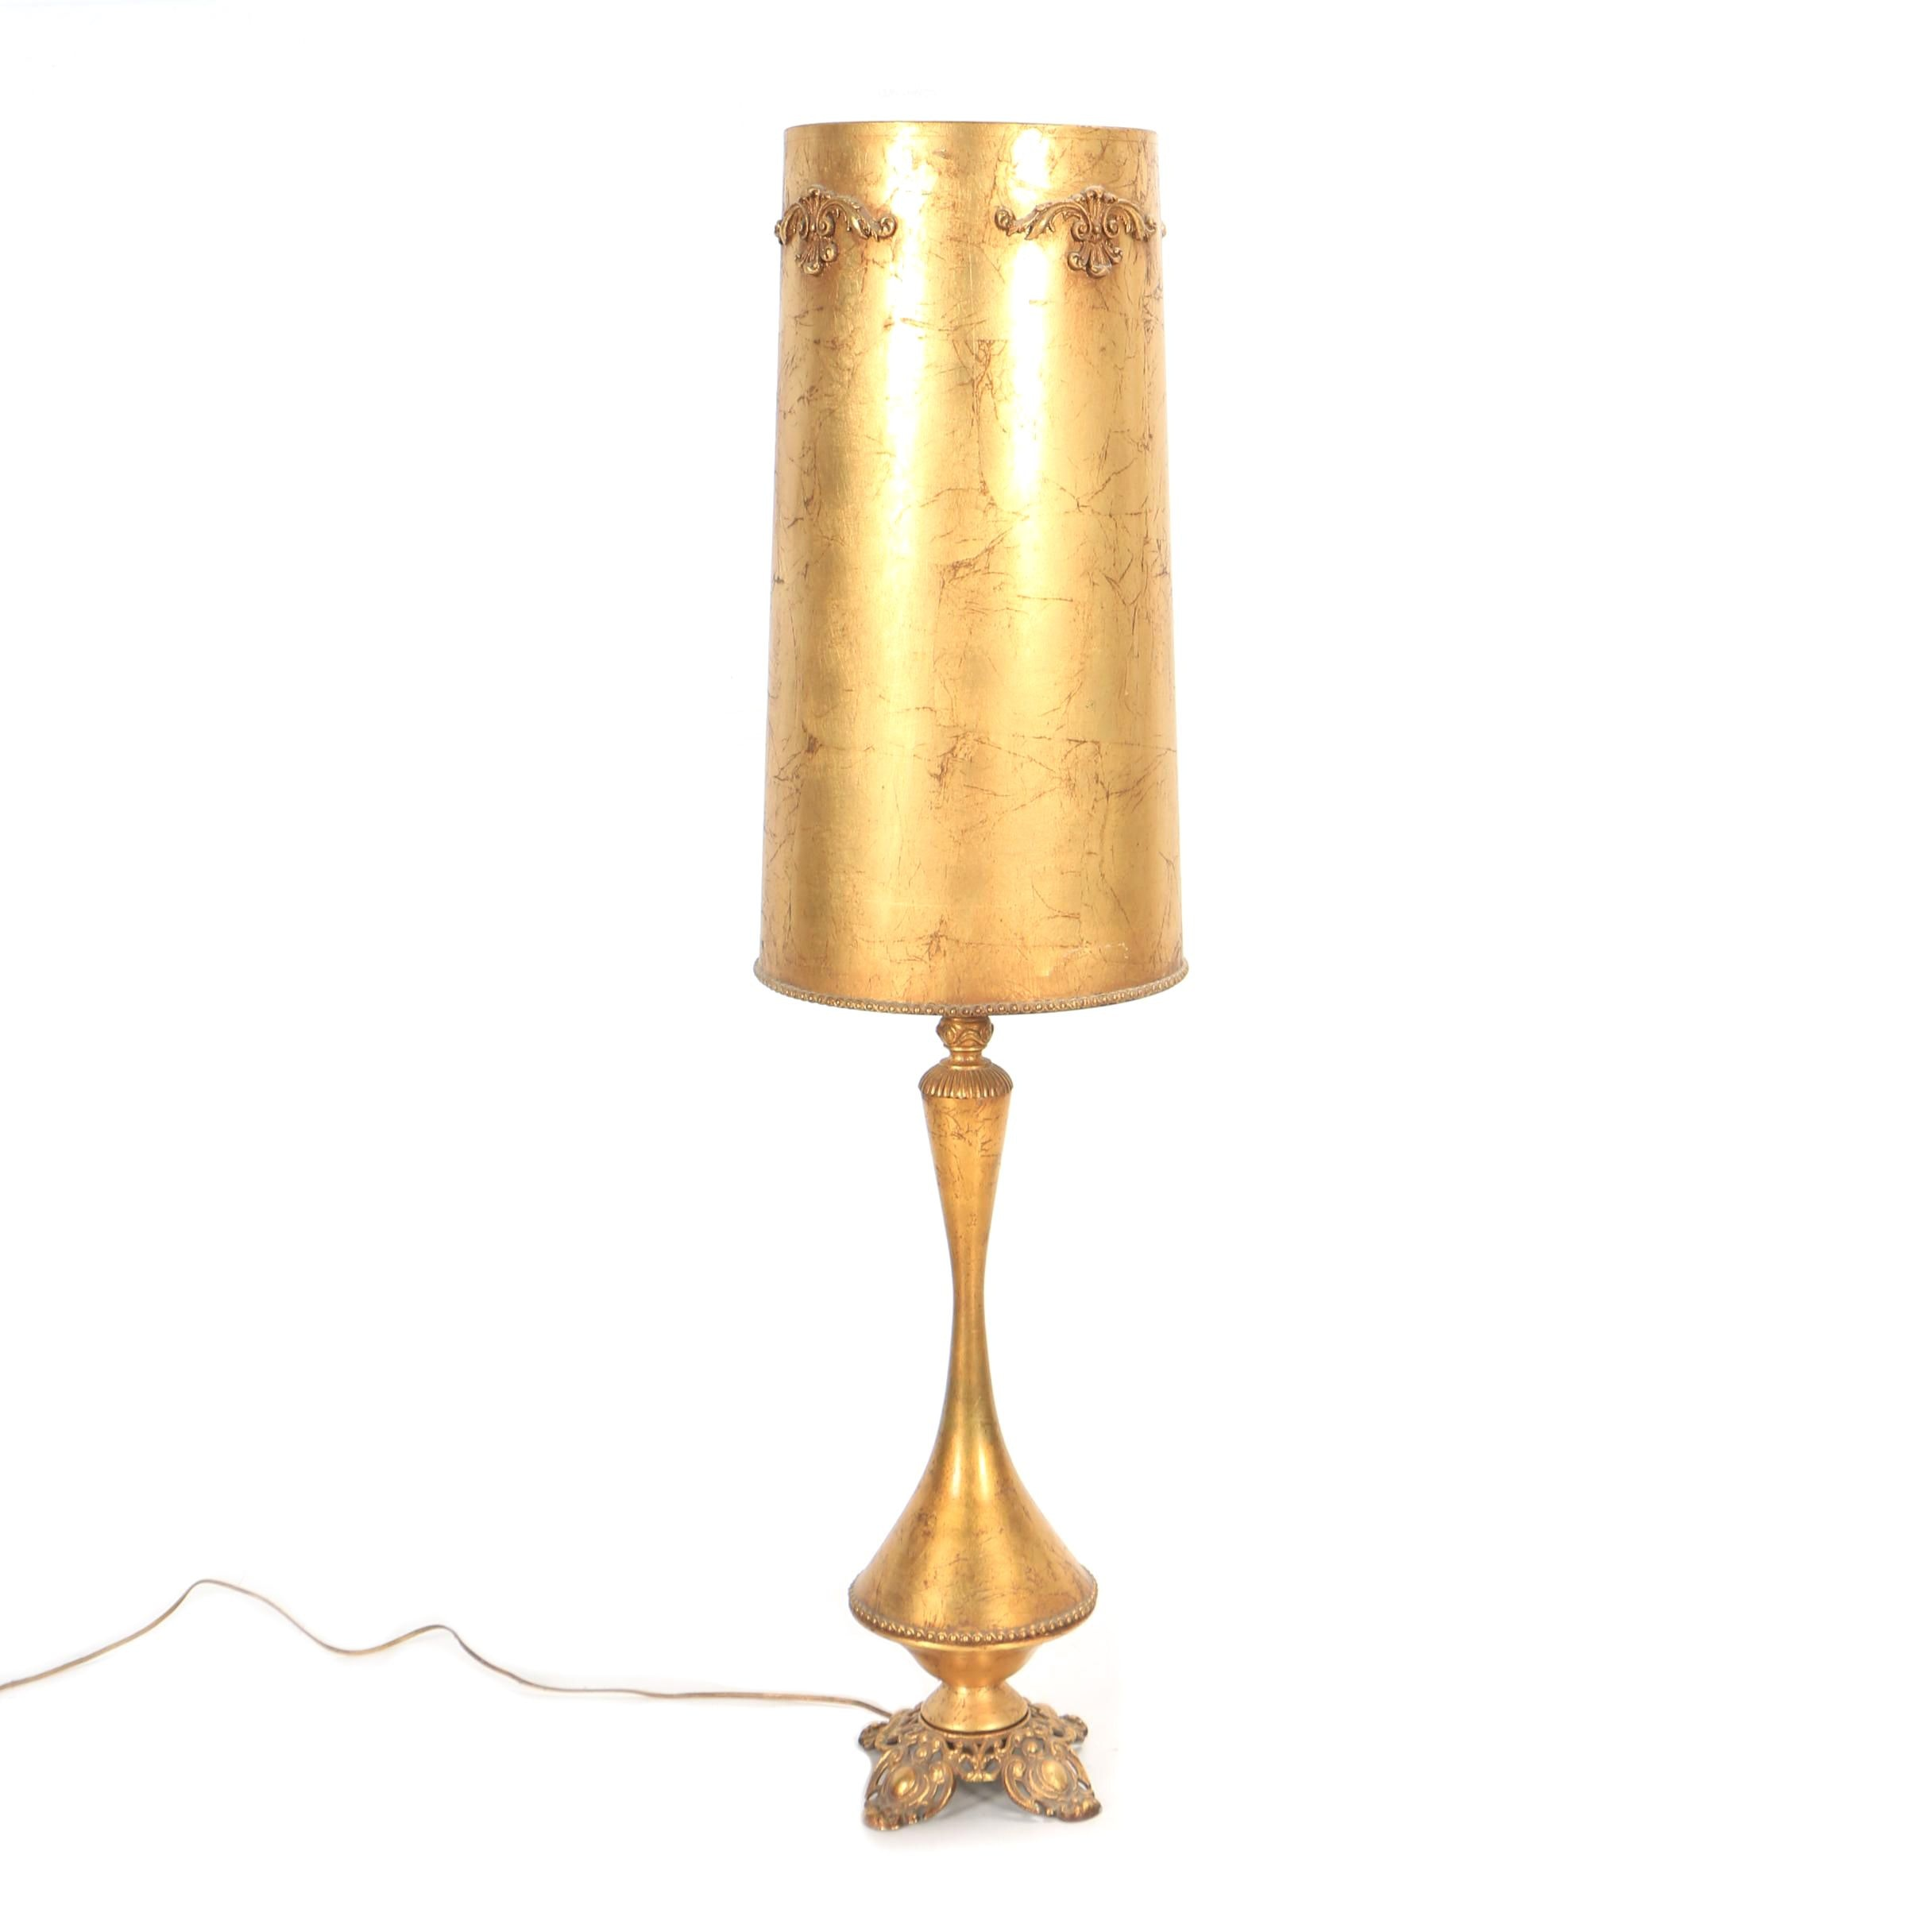 Vintage Gilt Finish Metal Table Lamp with Matching Parchment Cylindrical Shade